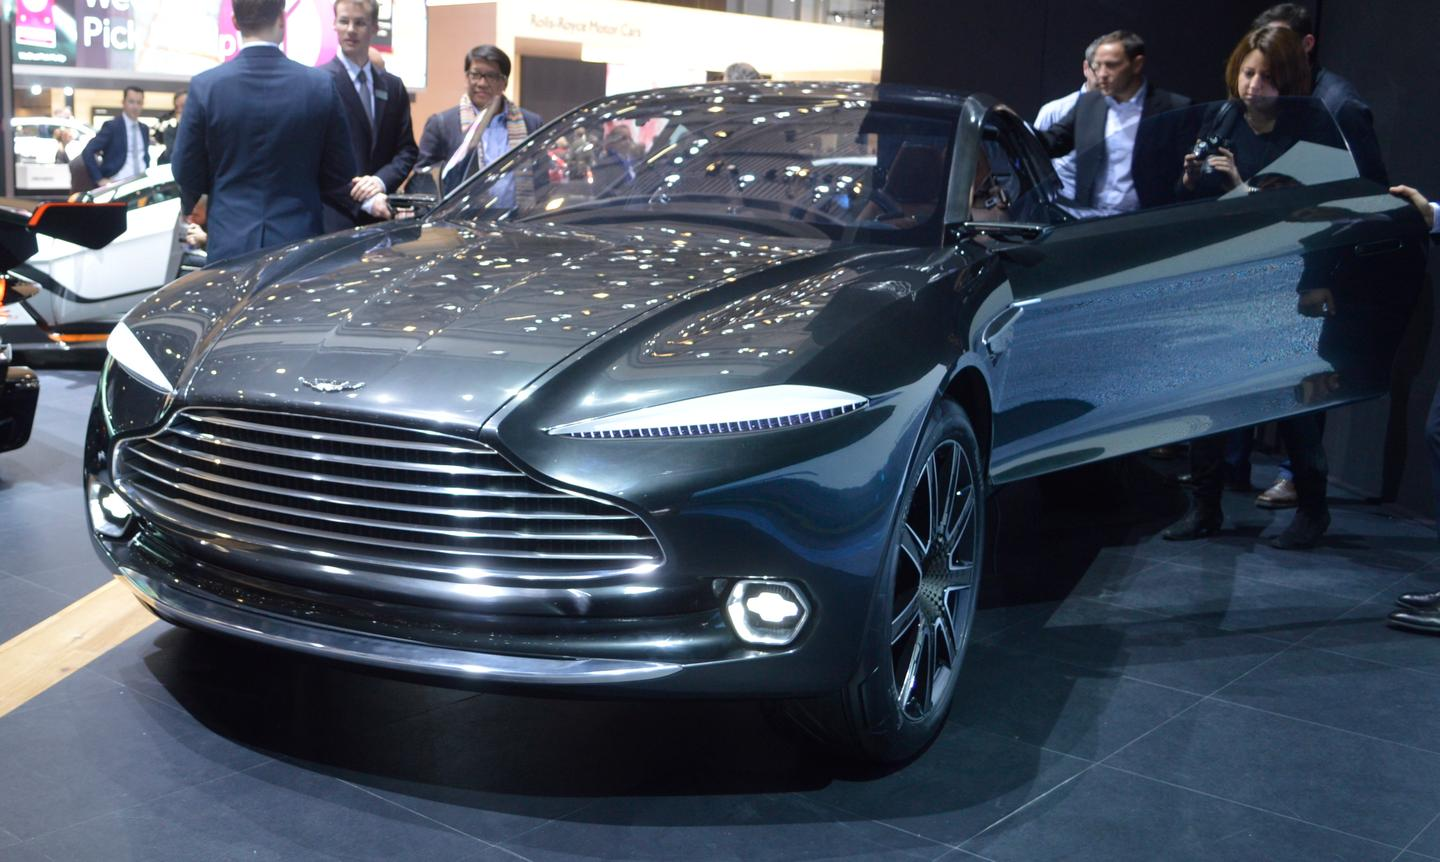 The DBX concept has an electric drive and drive-by-wire steering (Photo: C.C. Weiss/Gizmag)